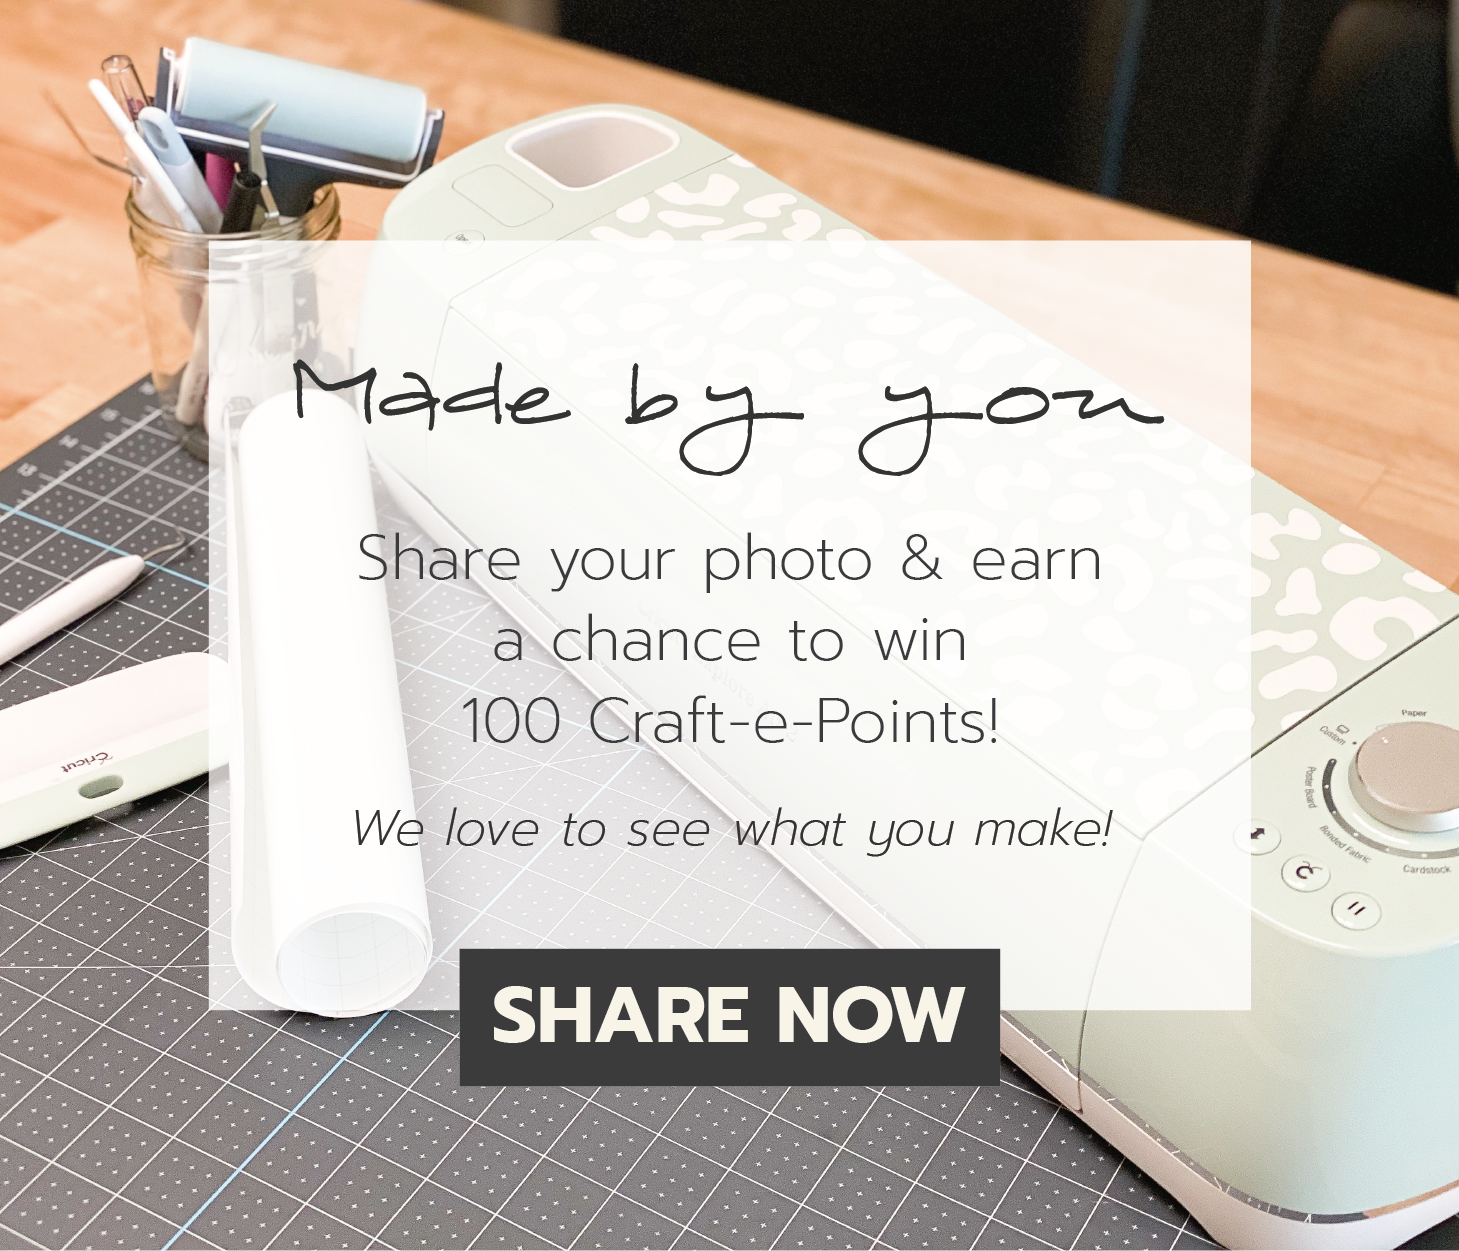 Made by You. Share your photo and earn a chance to win 100 Craft-e-Points. Redeem points for special discounts and gifts. We love to see what you make. Share your project.